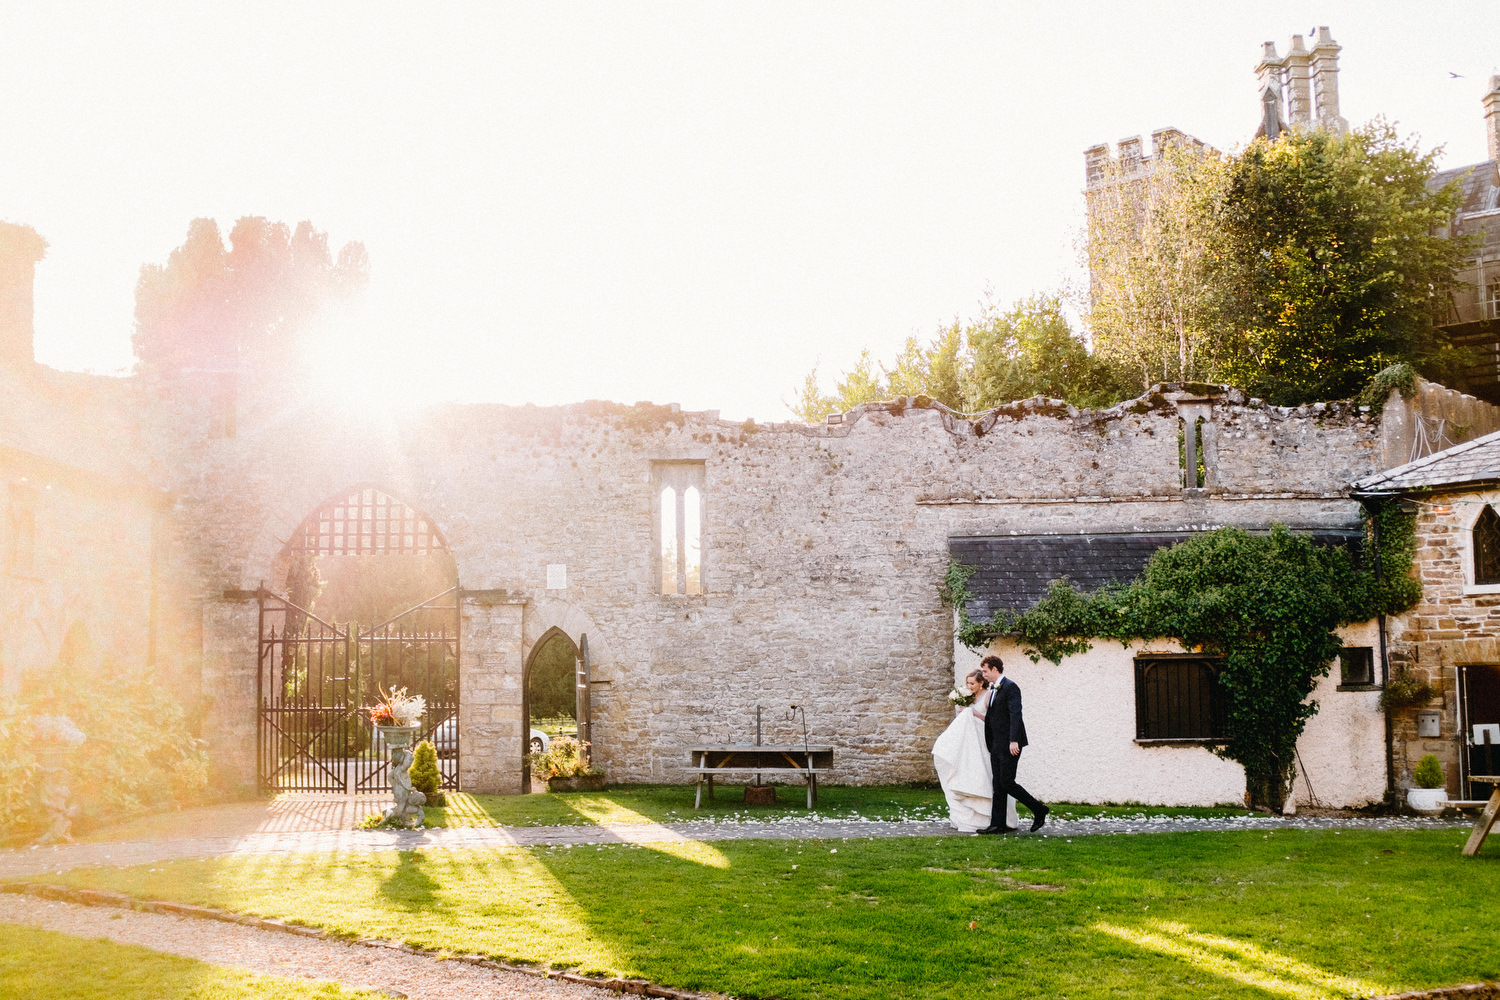 000000000000000000000175_bride_style_vintage_photography_david_mcclelland_ireland_castle_hollywood_kinnity_wedding_photographer_fujifilm